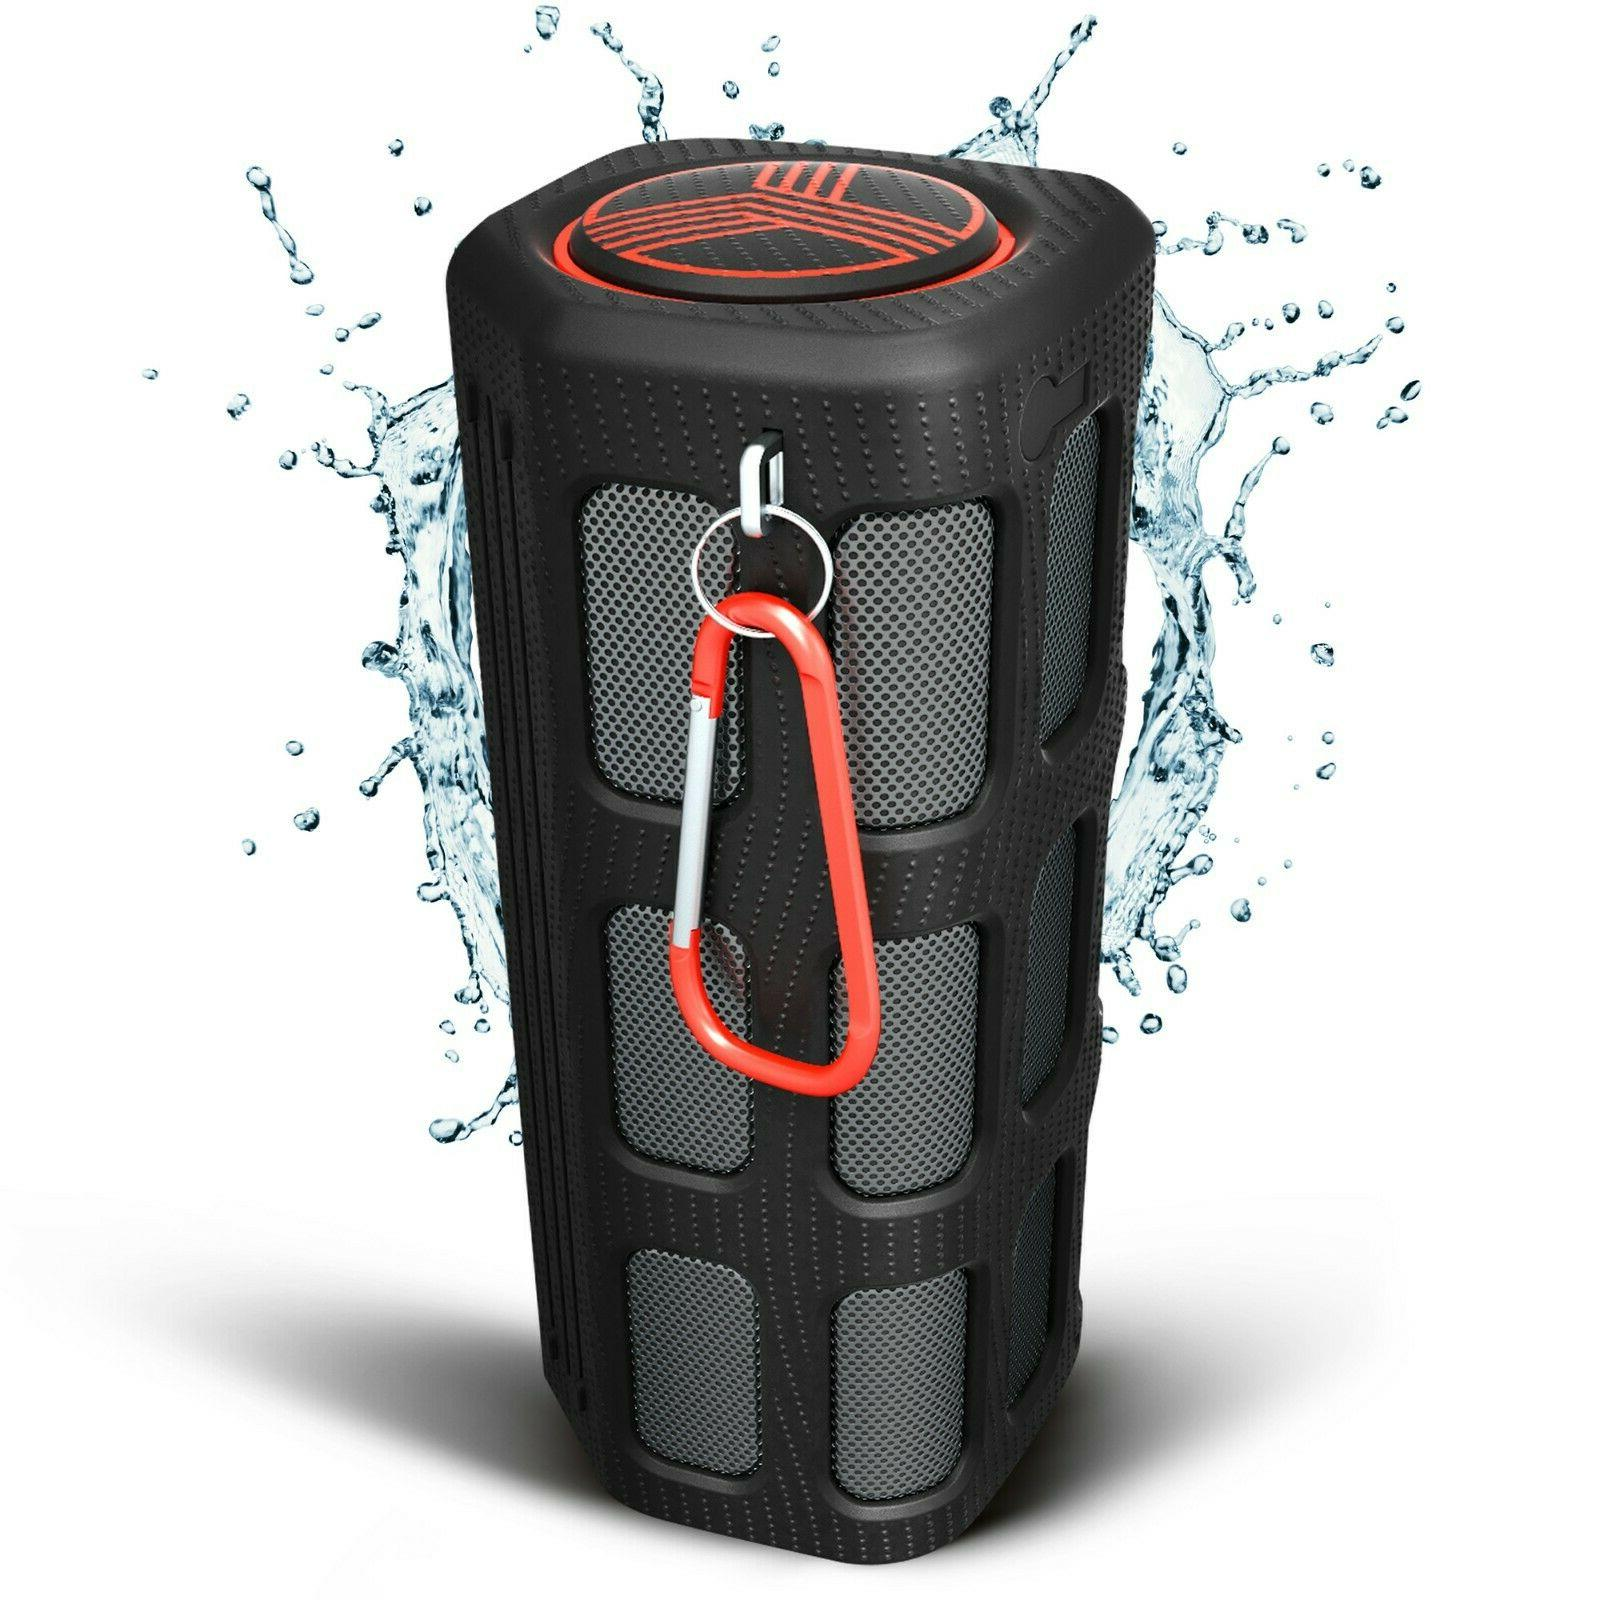 fx100 bluetooth portable wireless speaker rugged outdoors